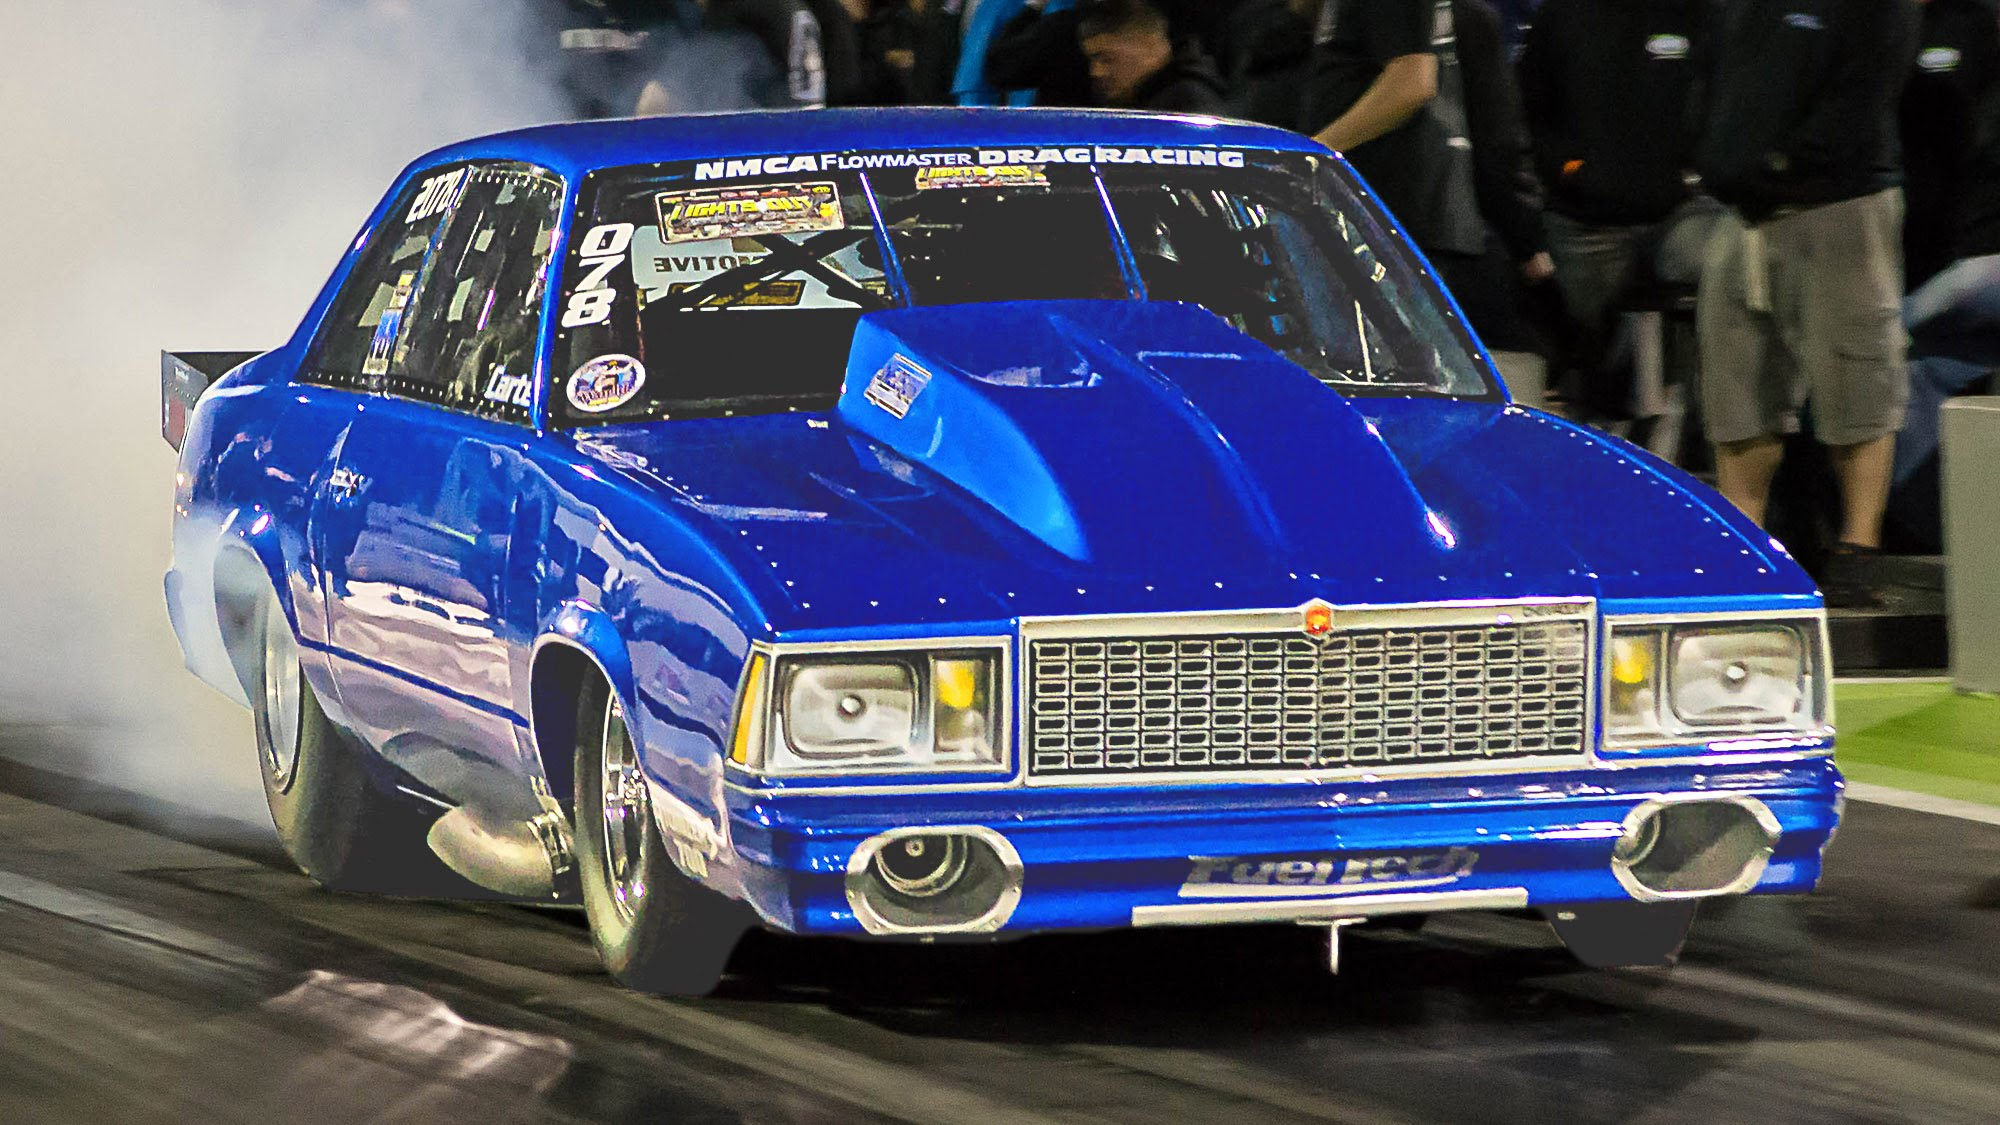 3000HP Malibu Turns 4.0-Second Eighth-Mile @ 195 MPH